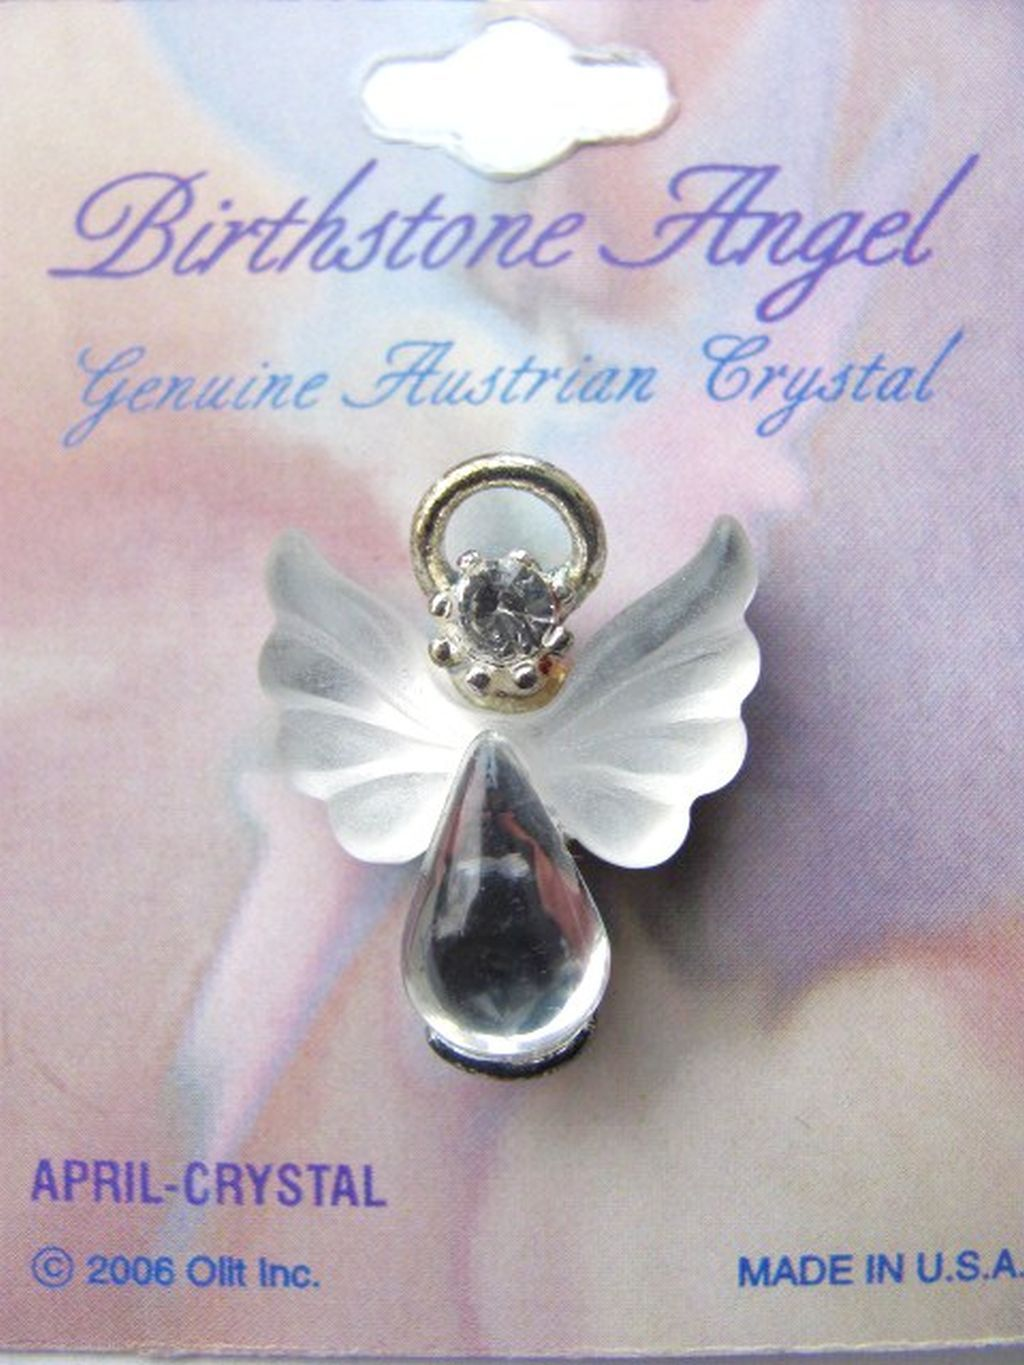 July Silver Angel Pin with Birthstone